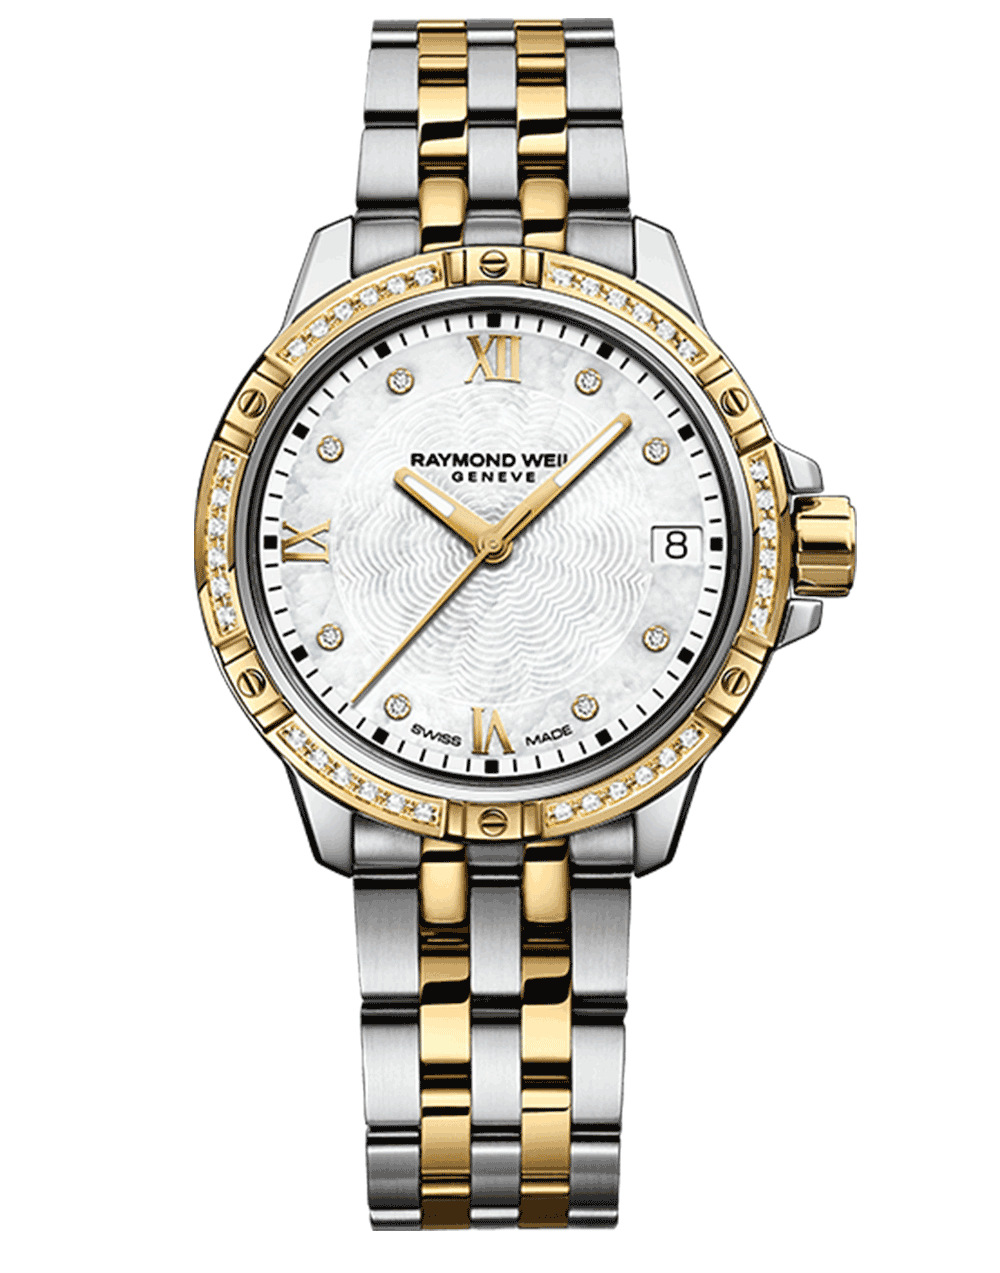 RAYMOND WEIL Geneve Gold Two tone Diamond Quartz Ladies Luxury Watch